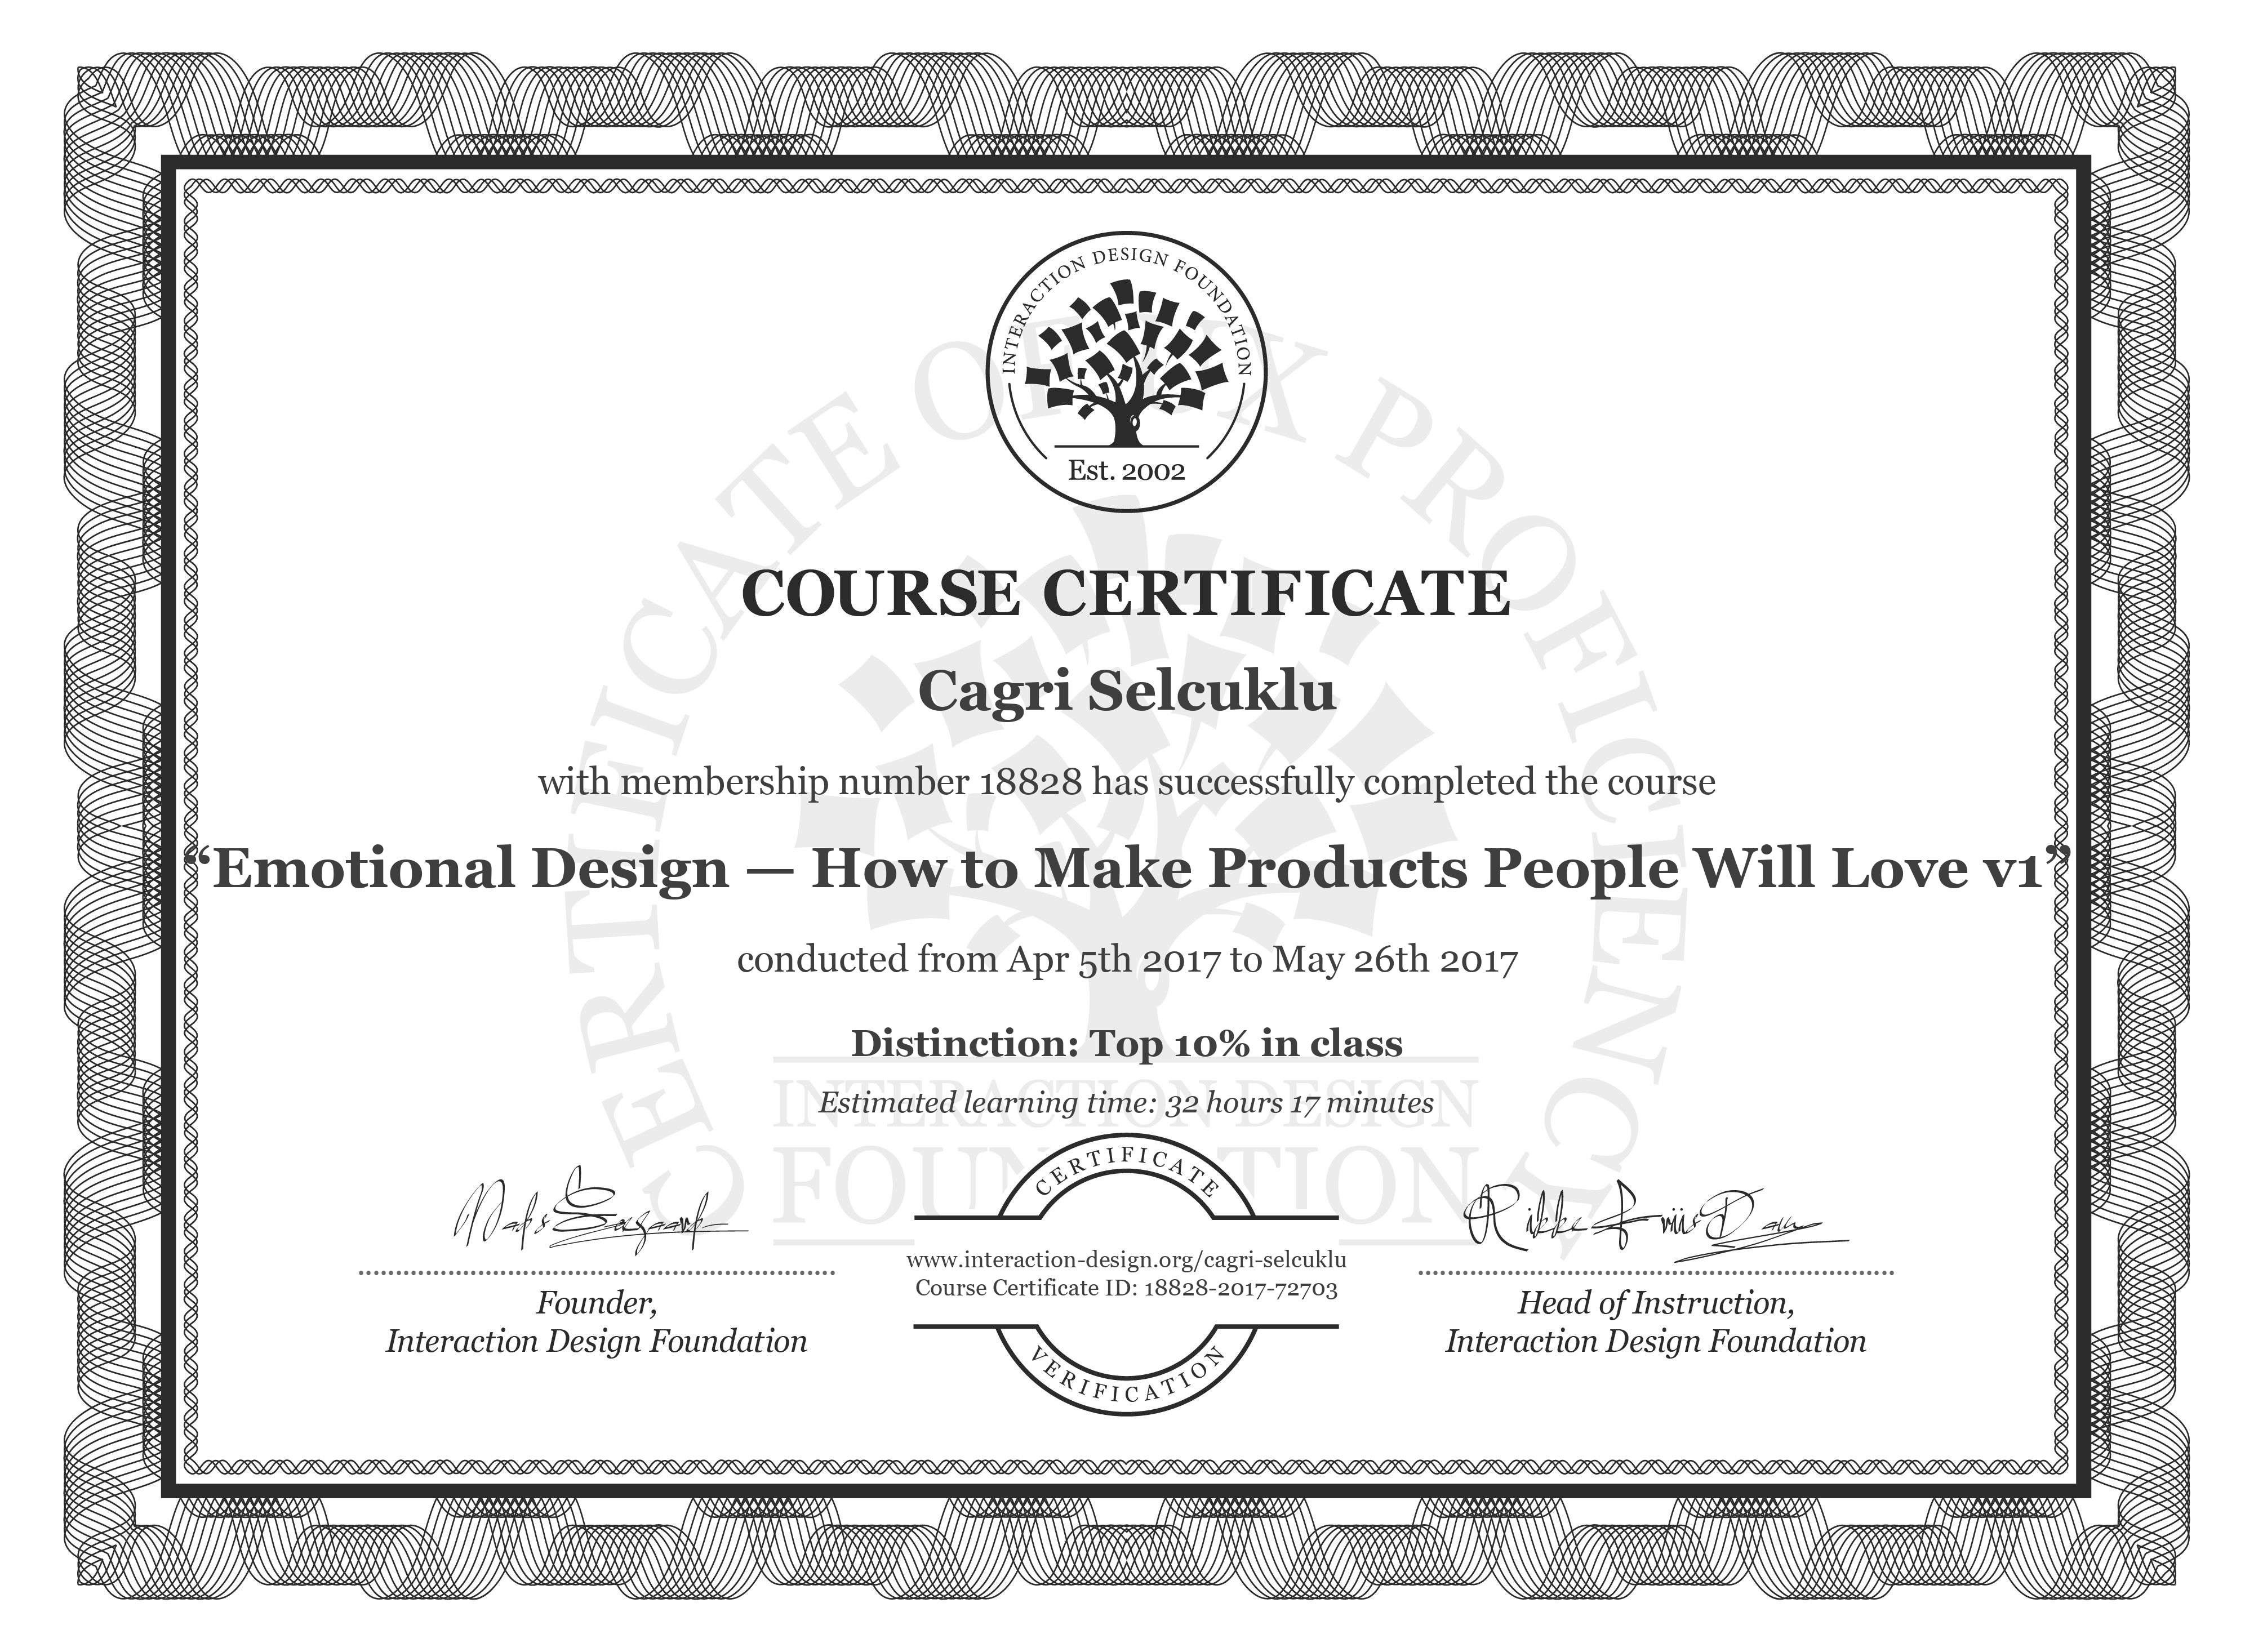 Cagri Selcuklu: Course Certificate - Emotional Design: How to Make Products People Will Love